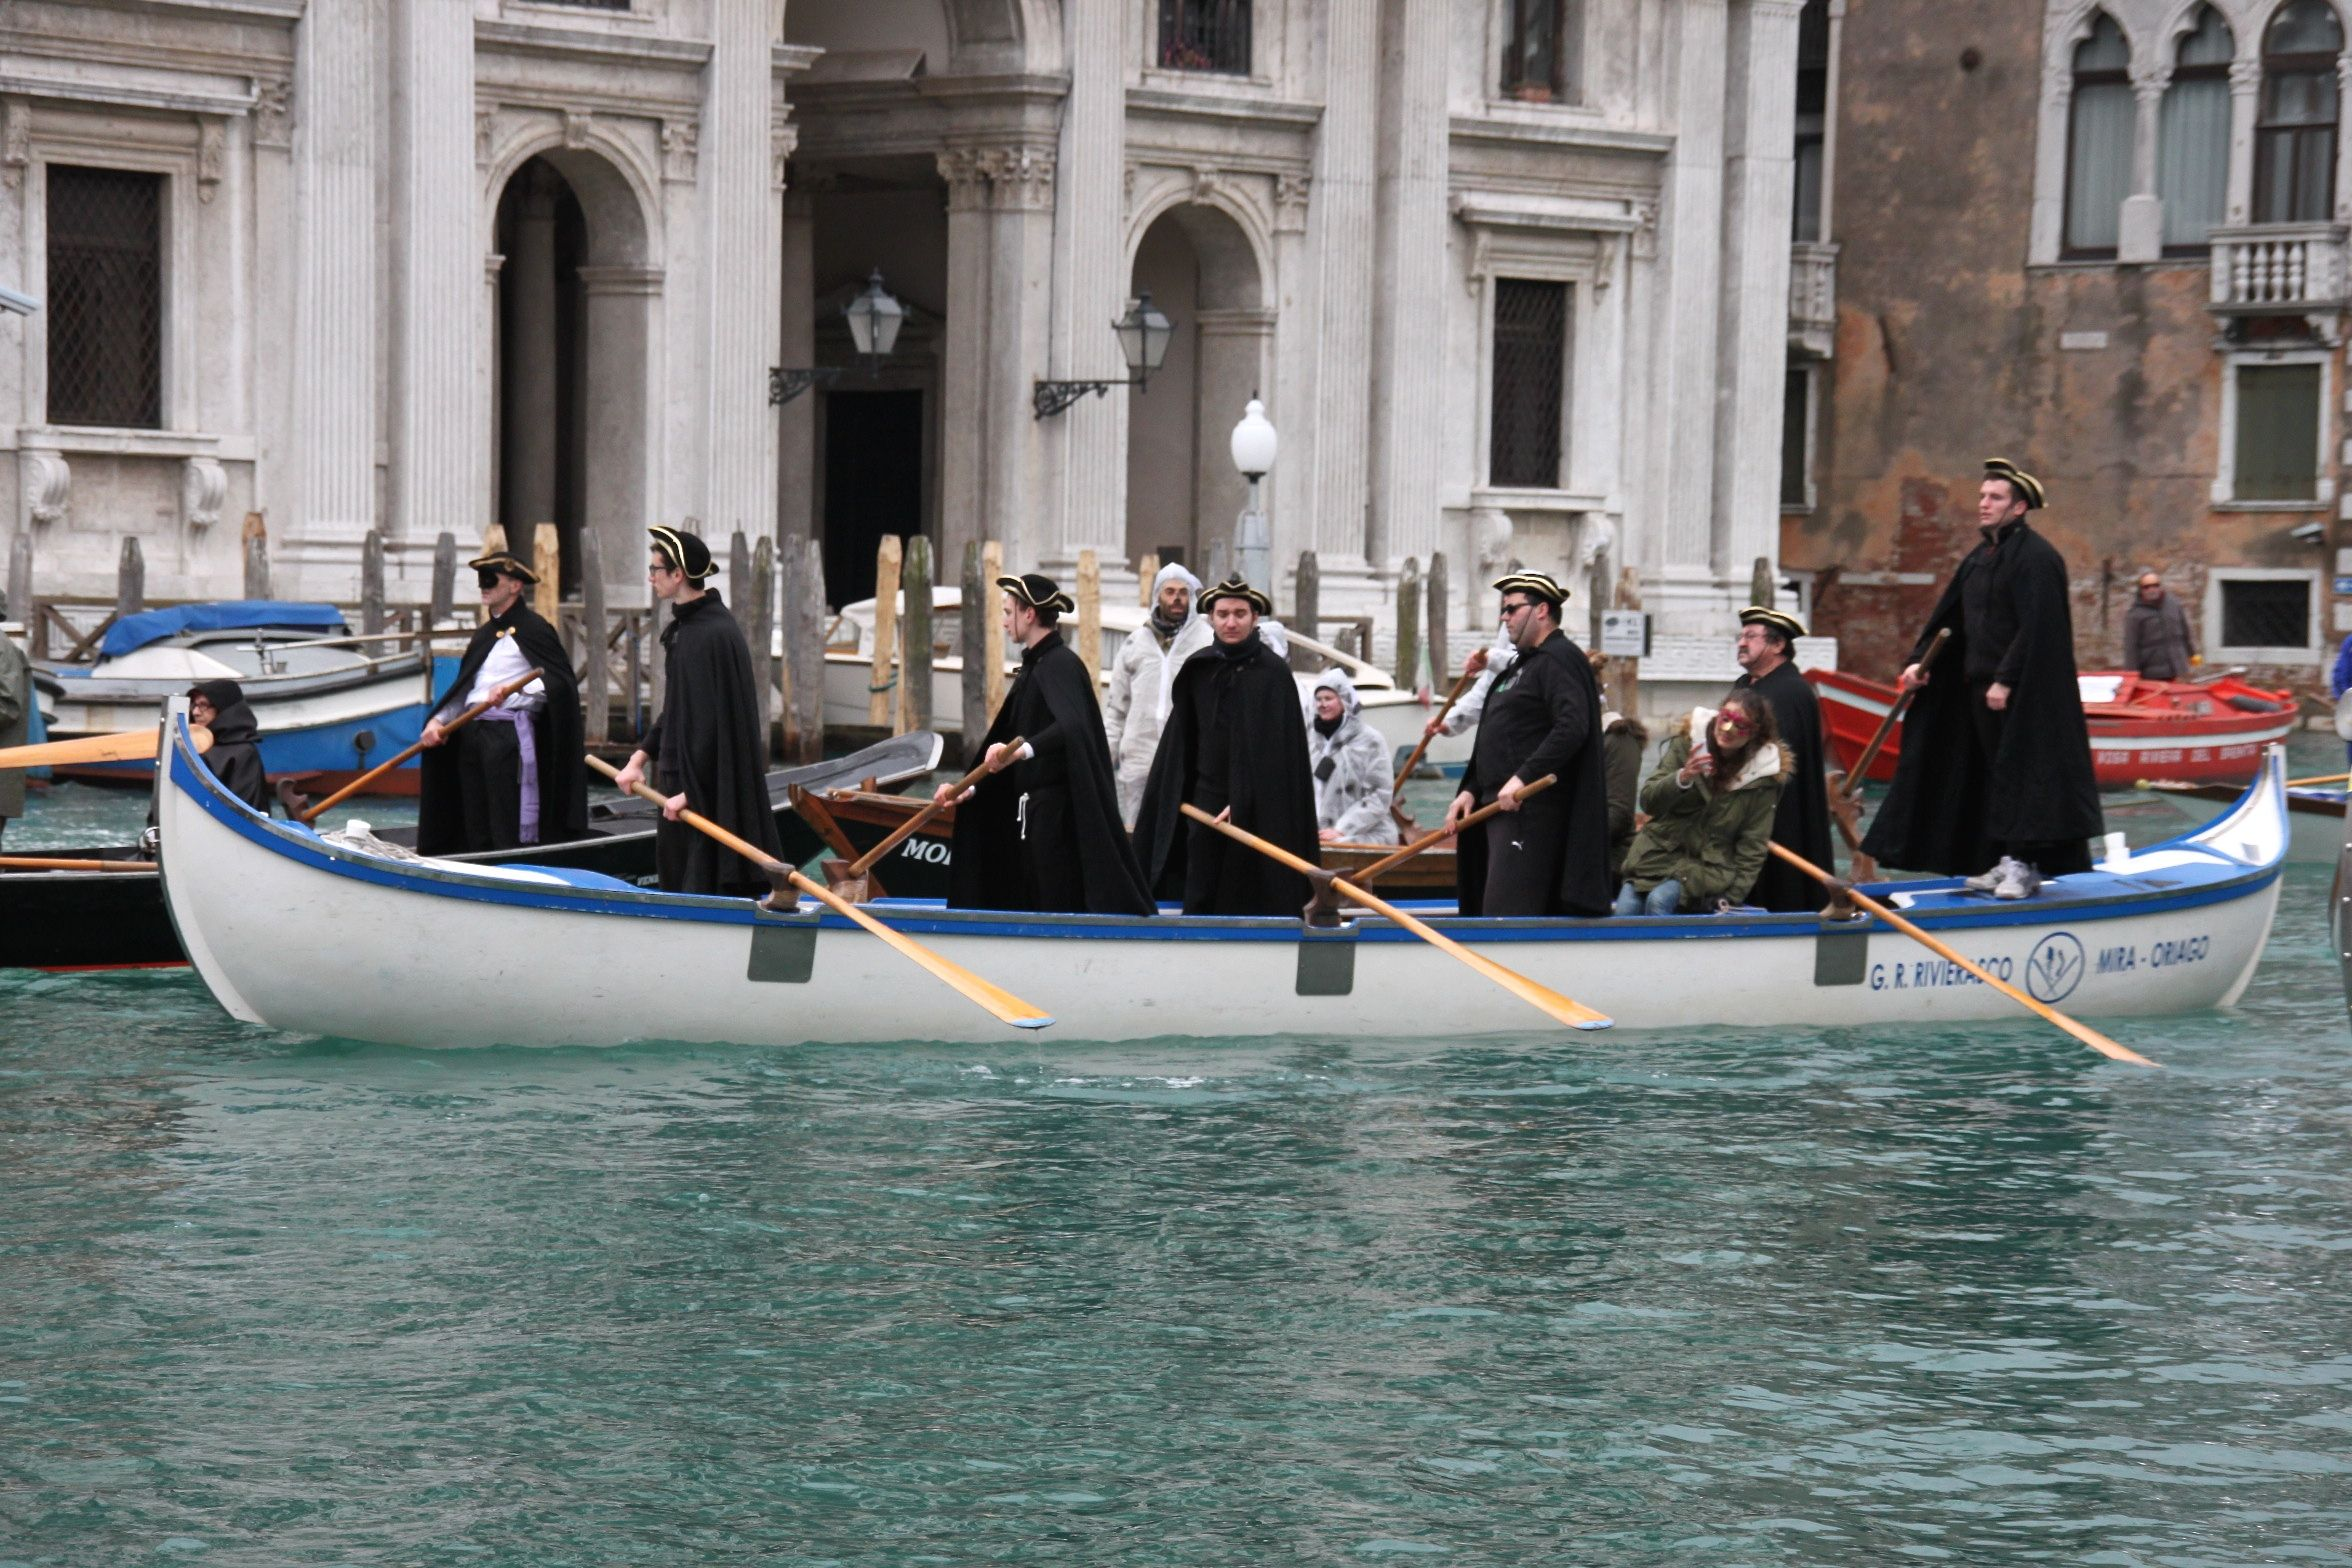 Venice Carnival Water Parade - Row, row, row your boat, gently down the Grand Canal!